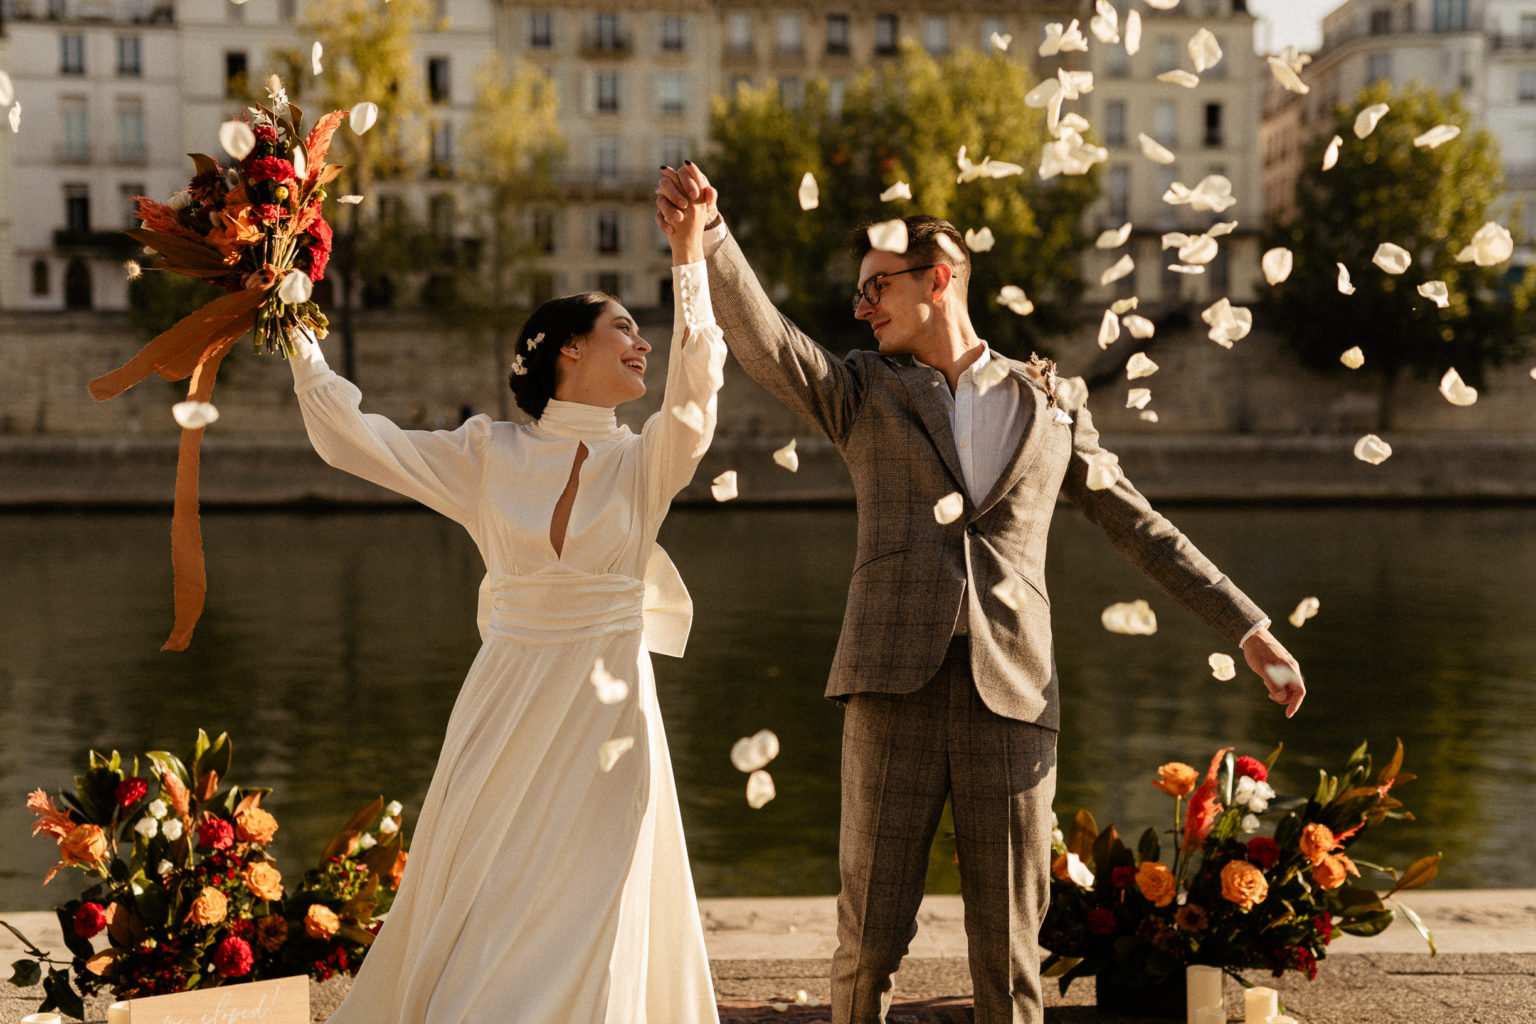 paris elopement wedding exit confetti flower petals